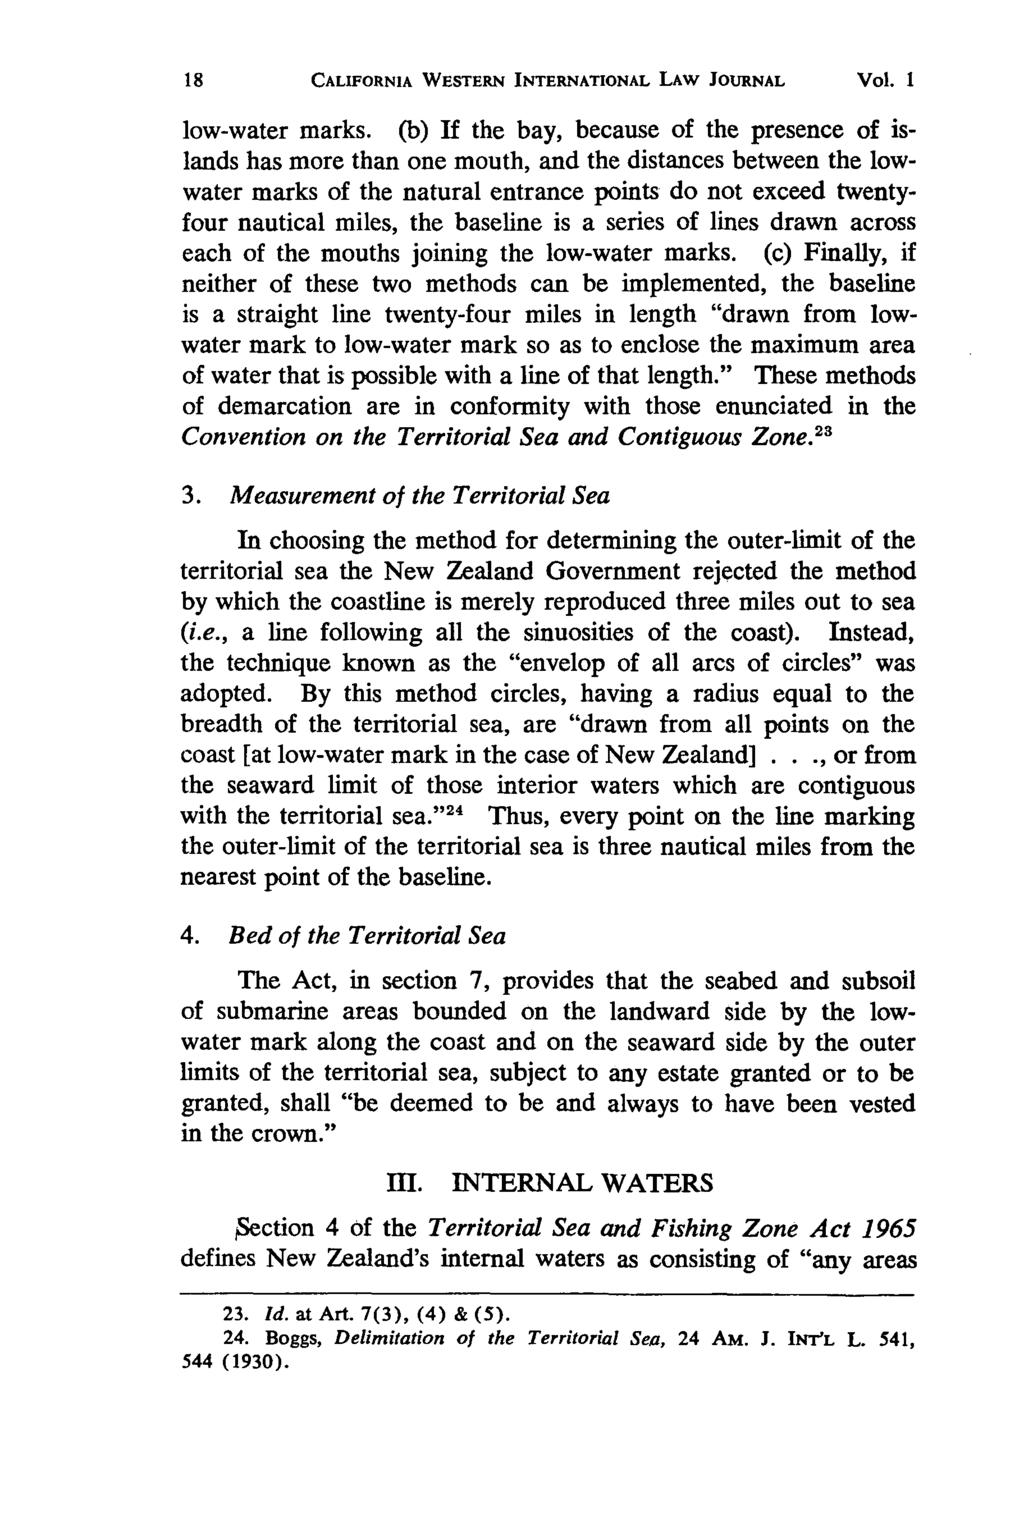 California Western International Law Journal, Vol. 1 [1970], No. 1, Art. 3 CALIFORNIA WESTERN INTERNATIONAL LAW JOURNAL Vol. I low-water marks.